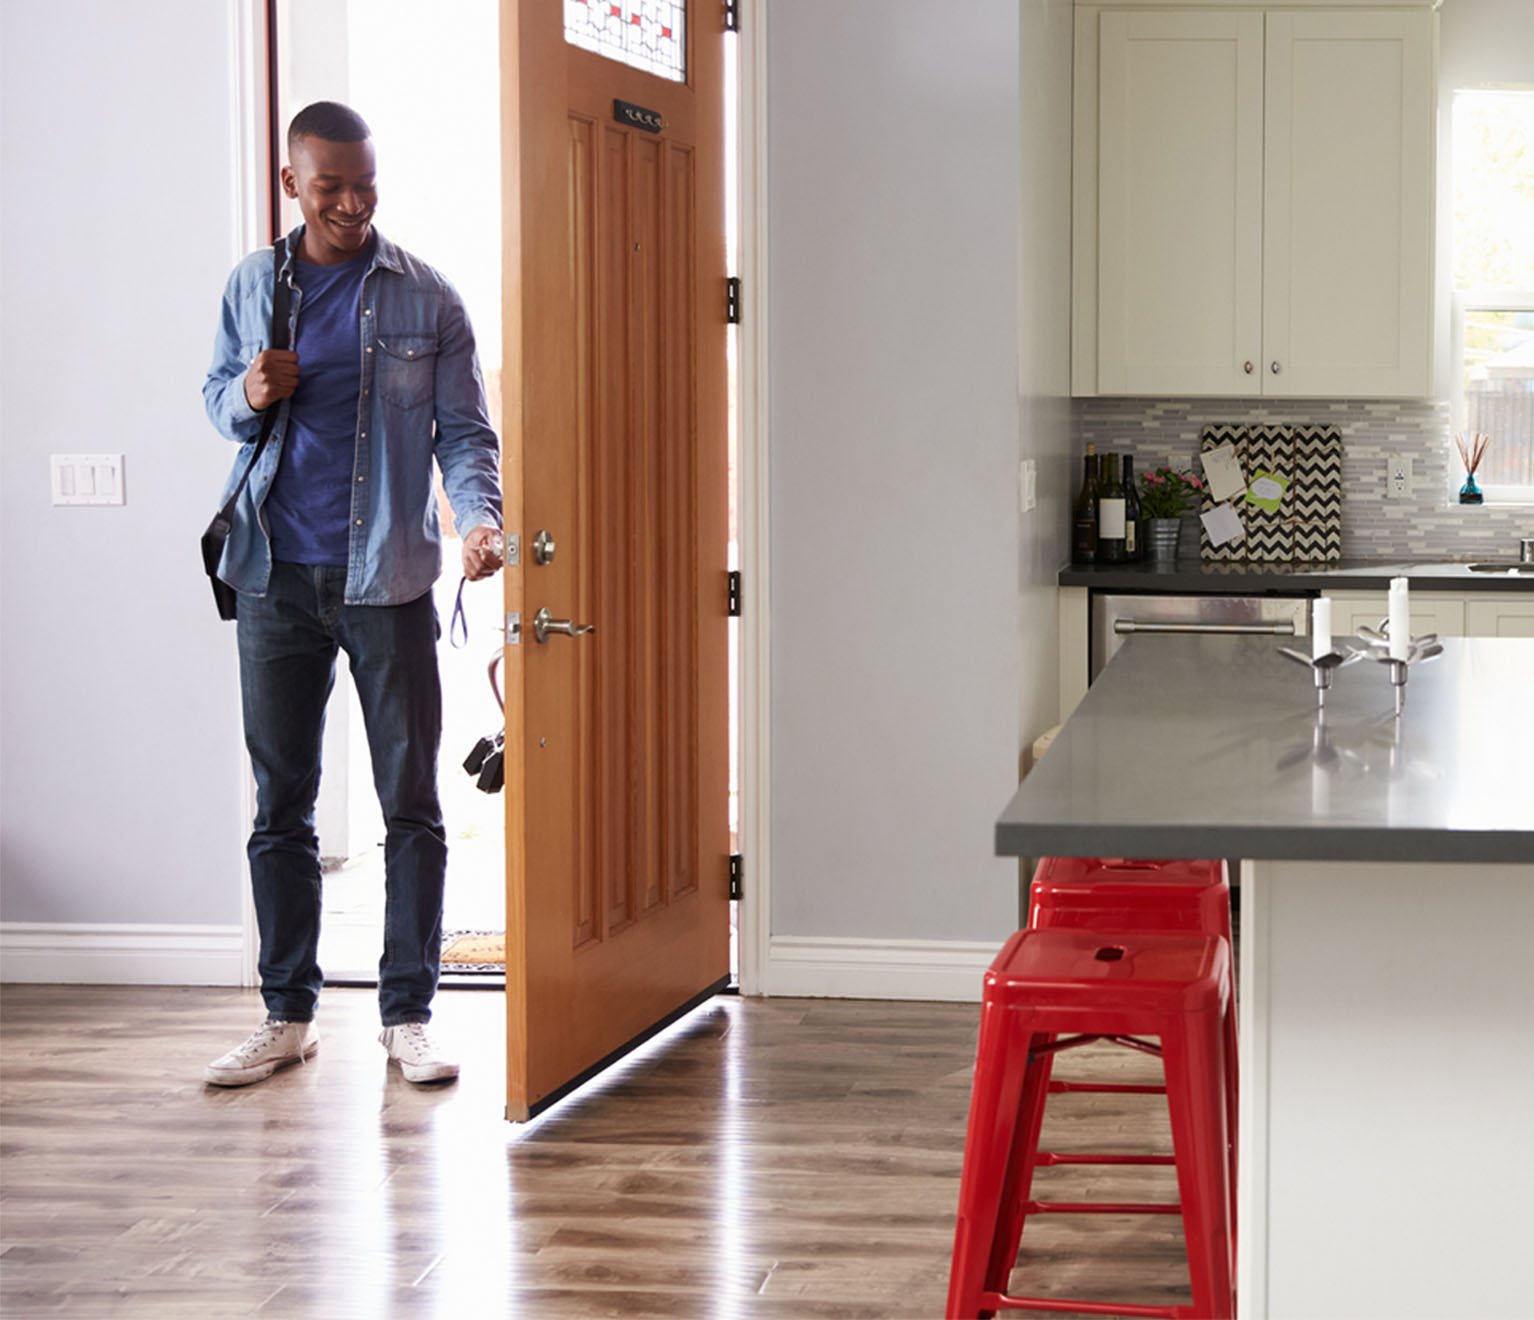 Apartments Agency: Safety Tips For Apartment Living